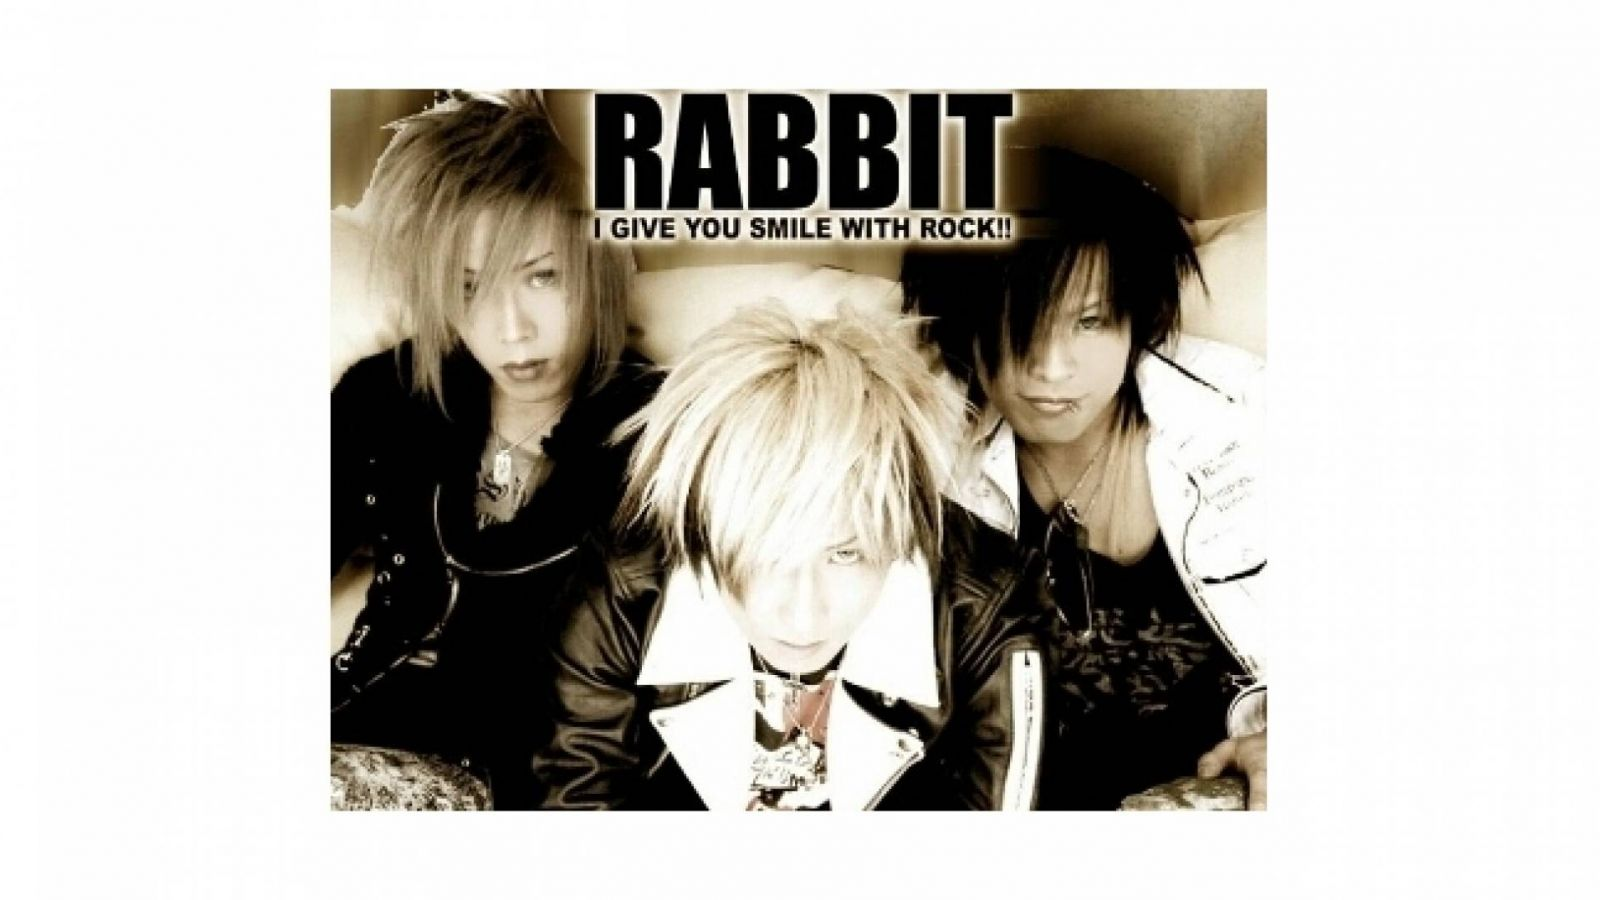 RABBIT © RABBIT. All Rights Reserved